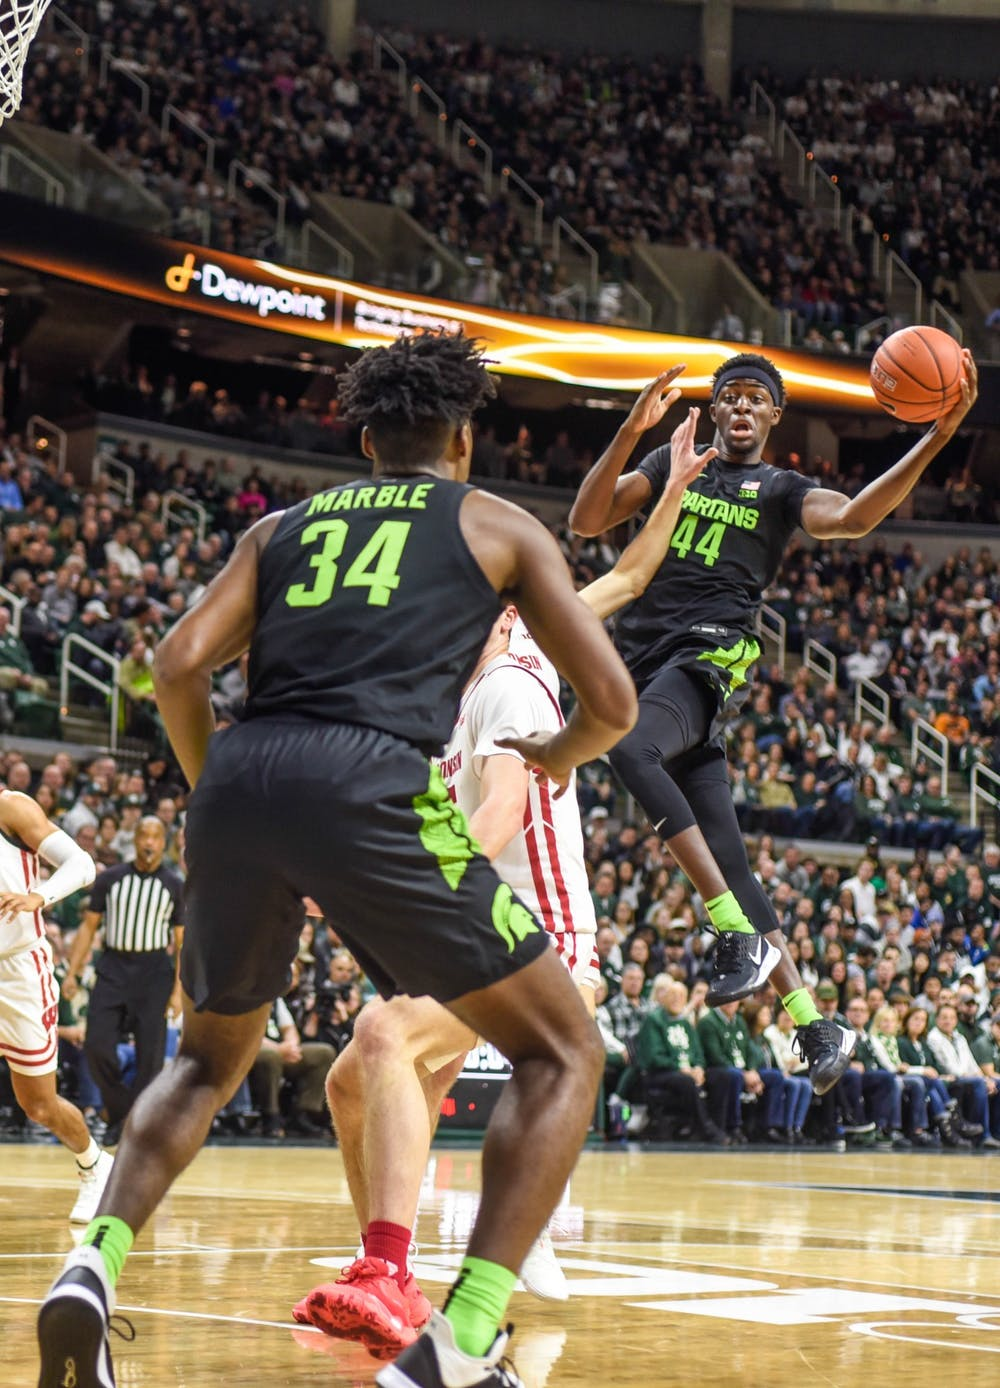 <p>Sophomore forward Gabe Brown (44) passes the ball during the game against Wisconsin at Breslin Center on Jan. 17. The Spartans lead the Badgers at the half, 35-20.</p>